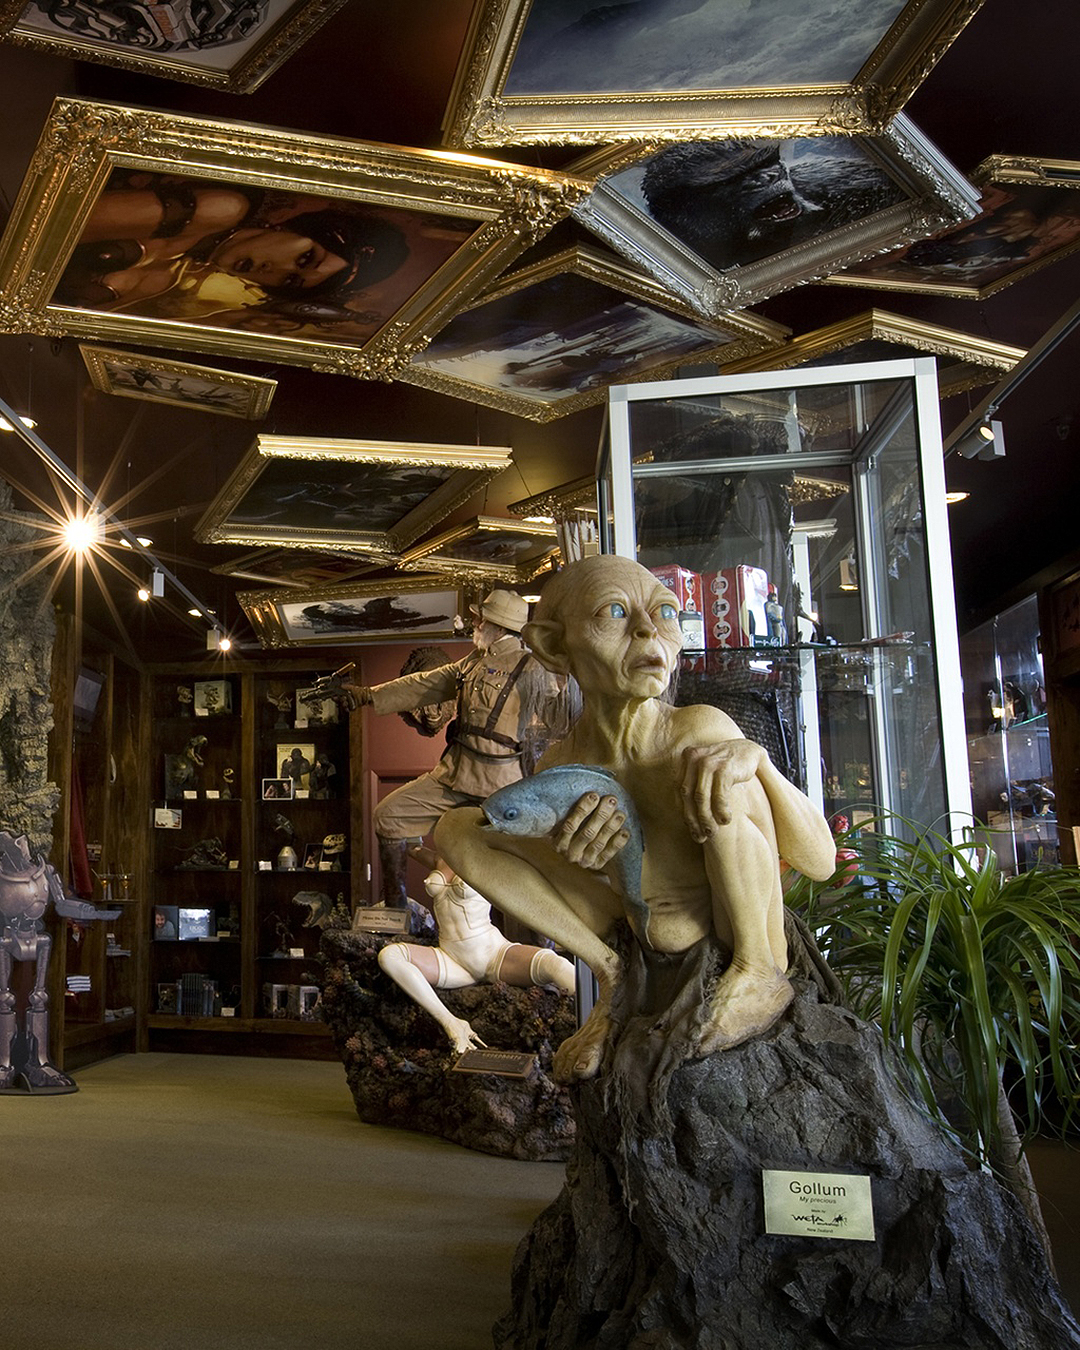 Weta Cave in Wellington with Gollum in the foreground.